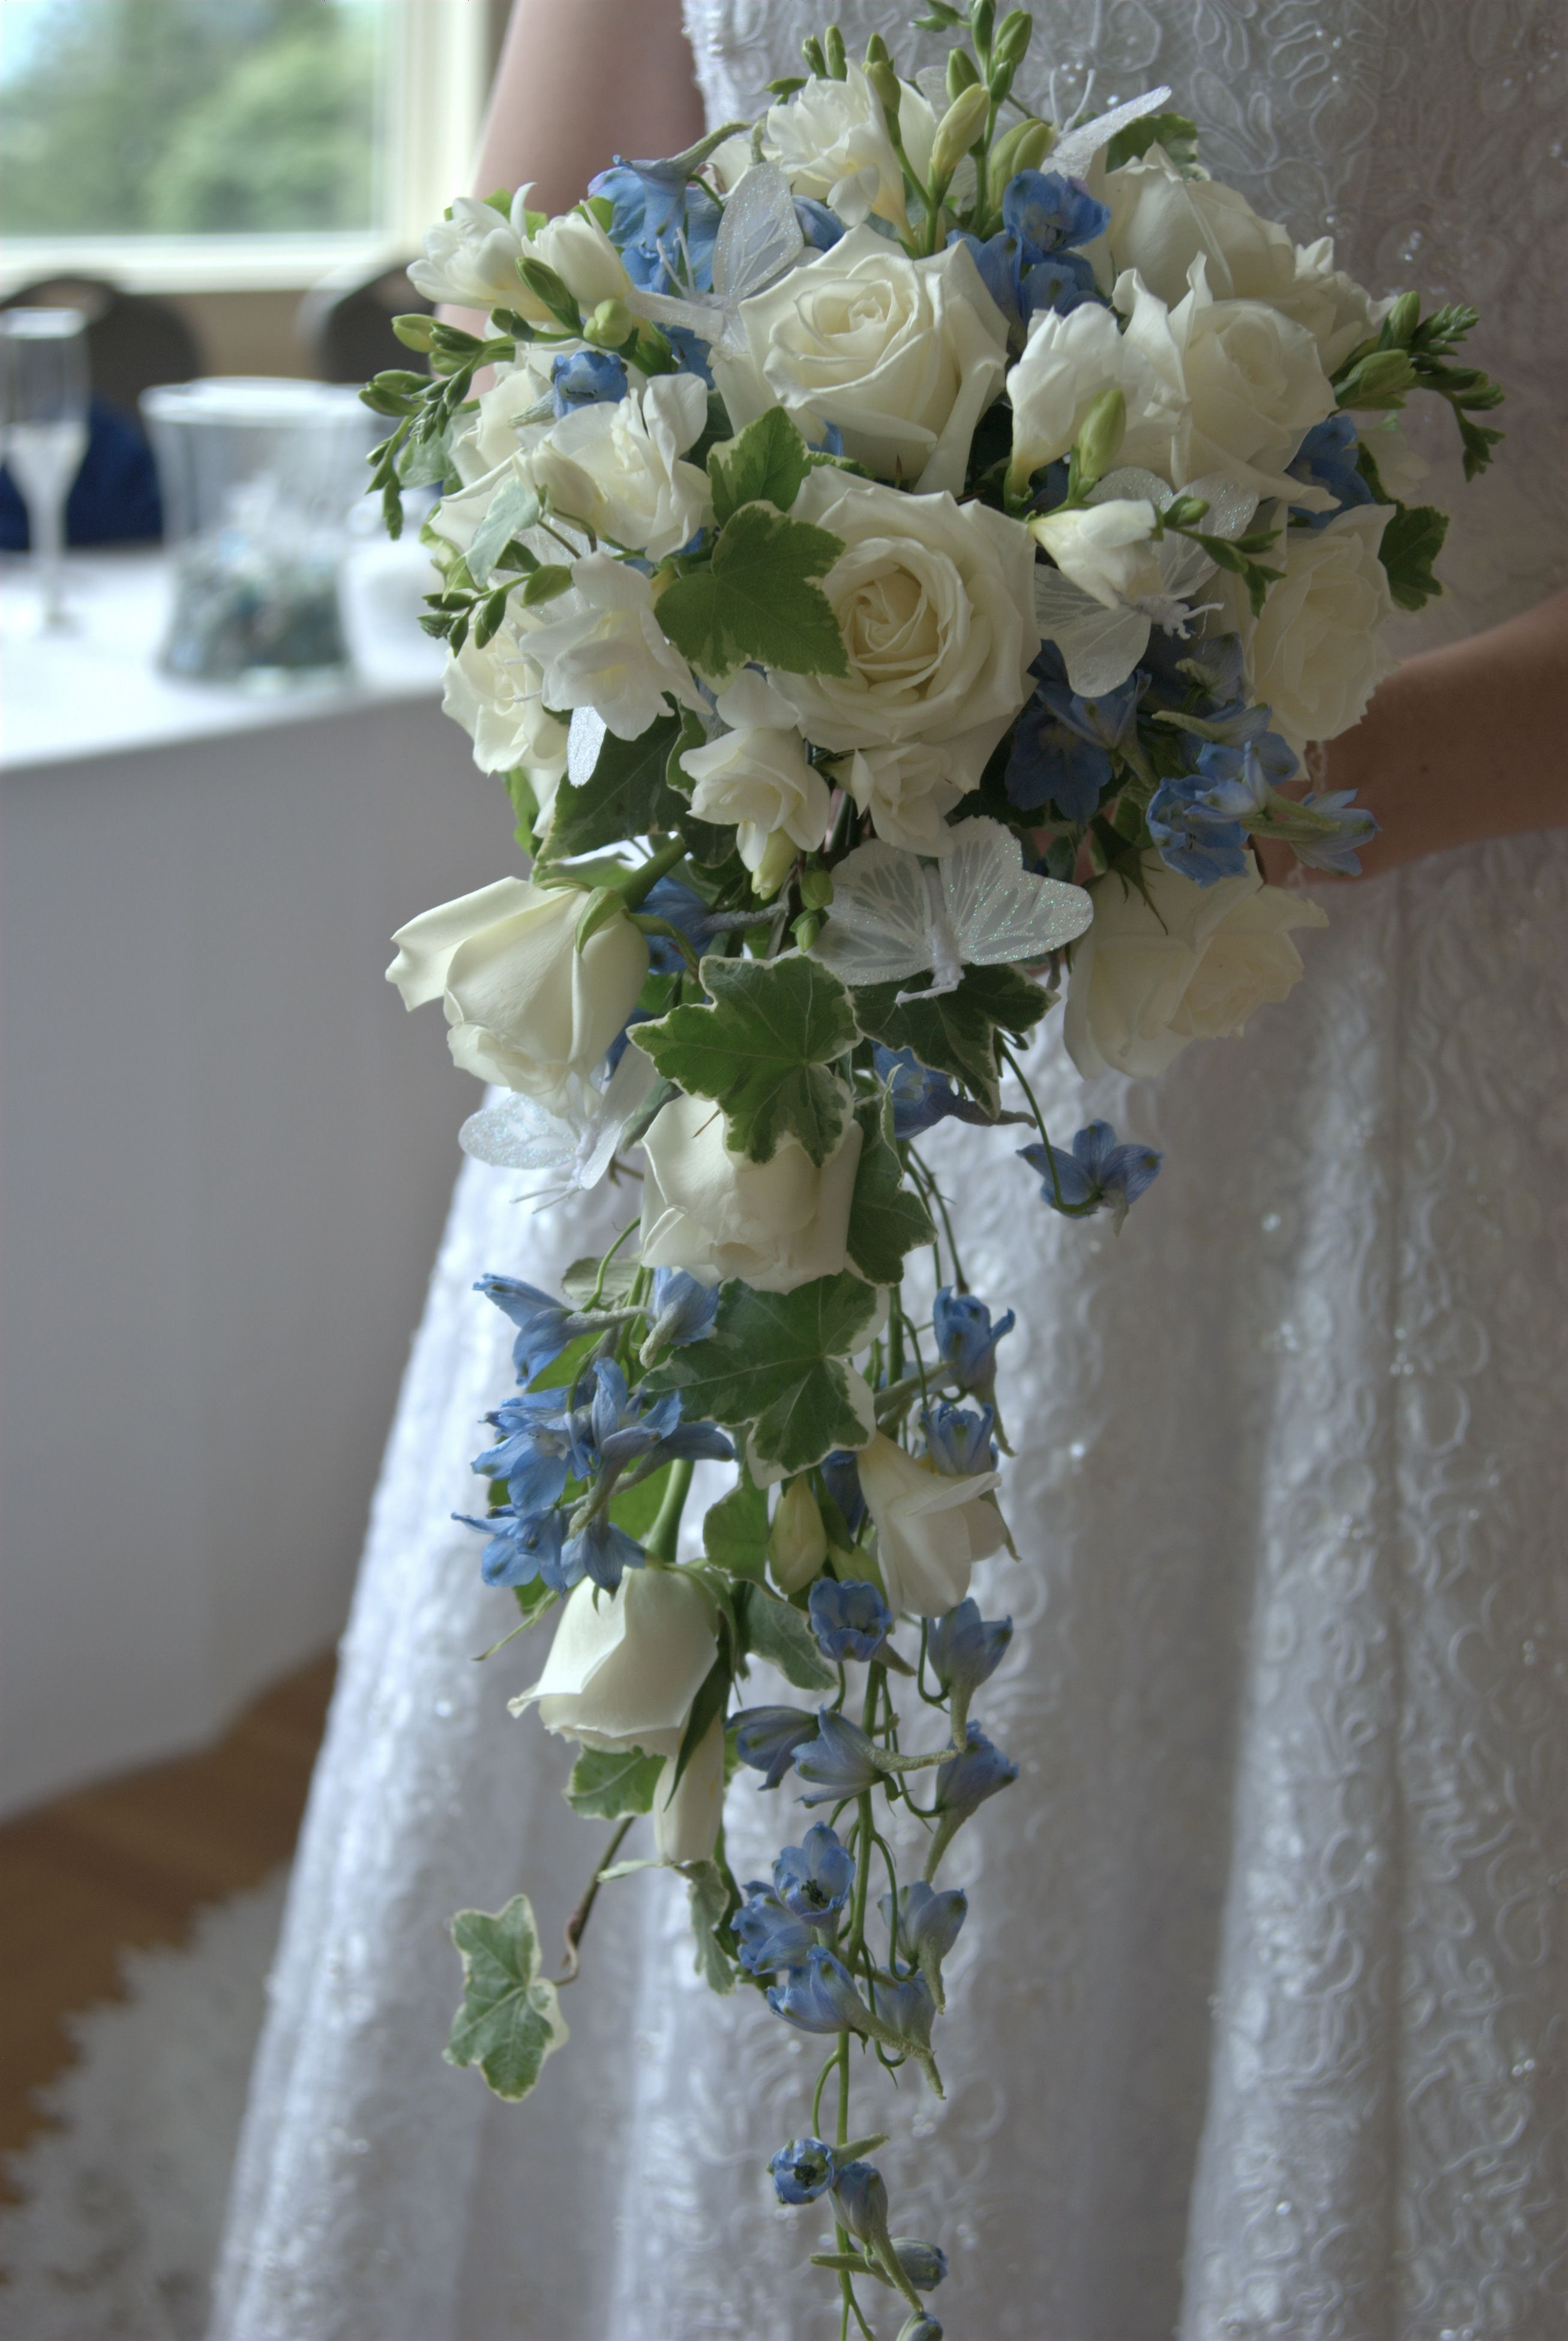 My bouquet A cascading array of white roses, ivy, a